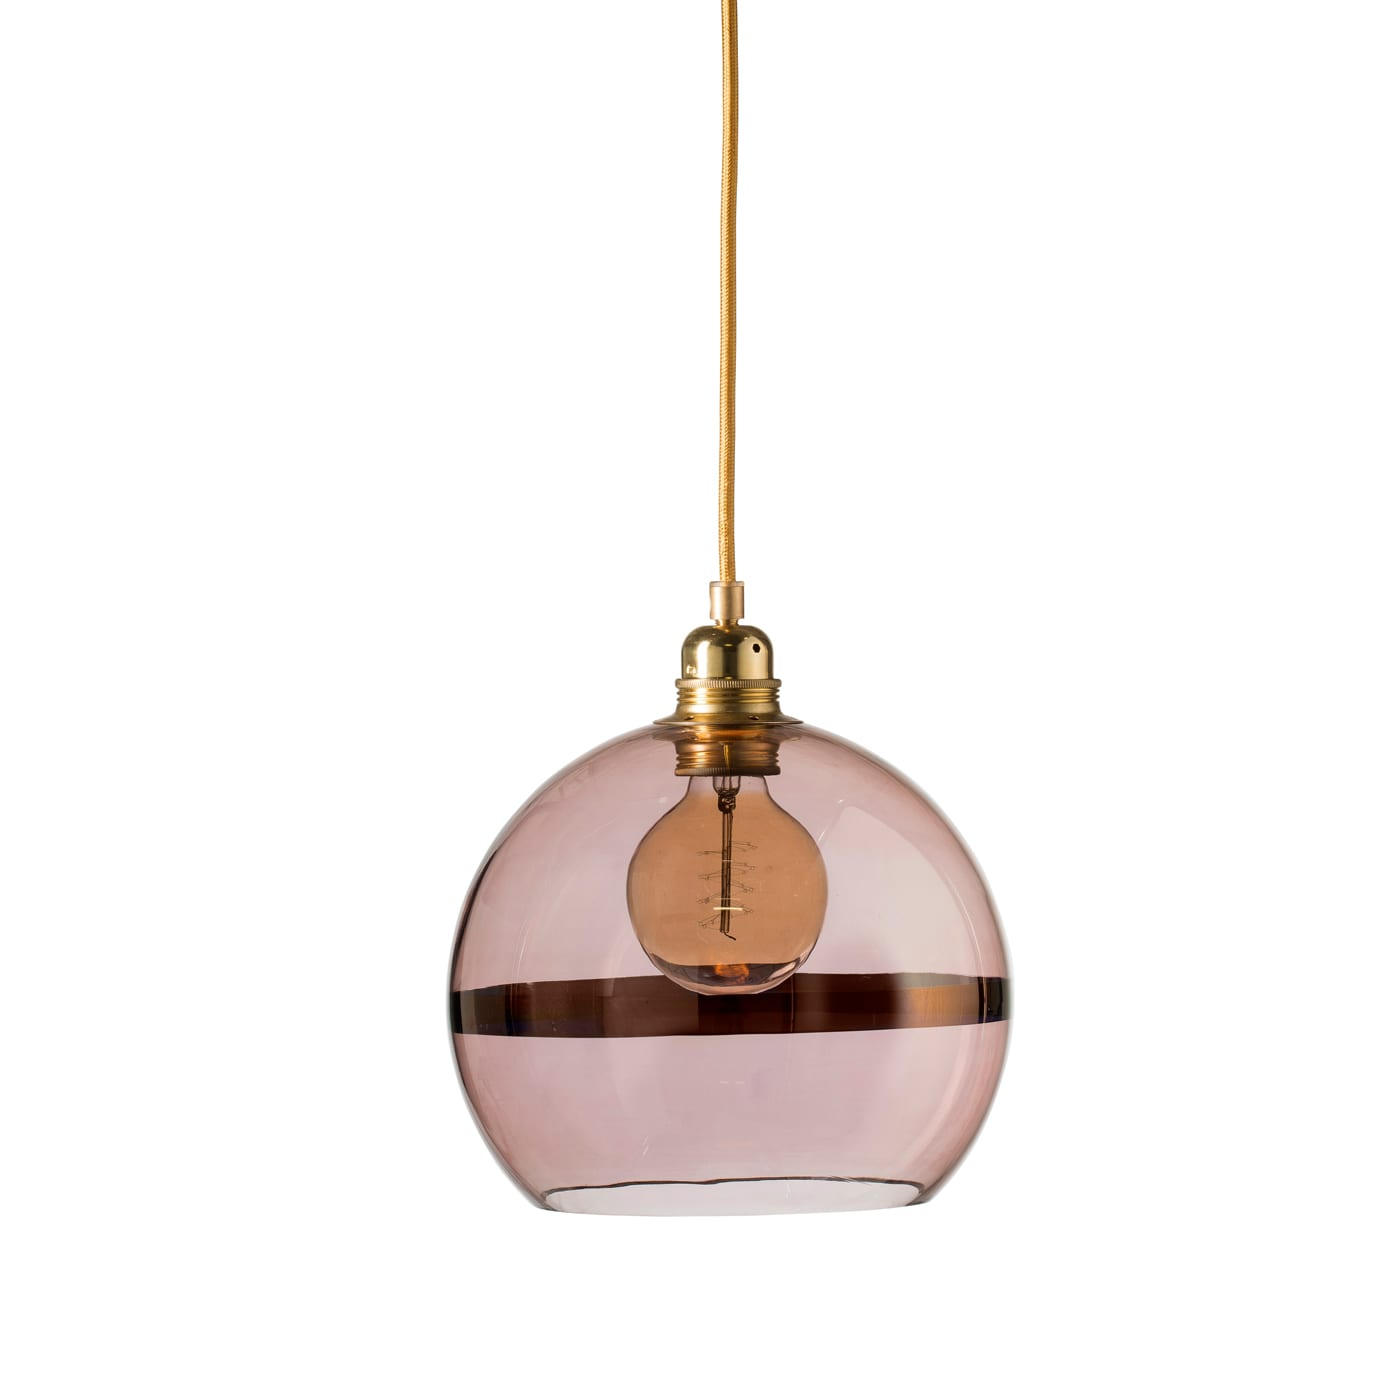 Rowan pendant lamp, copper stripe on obsidian, 22cm